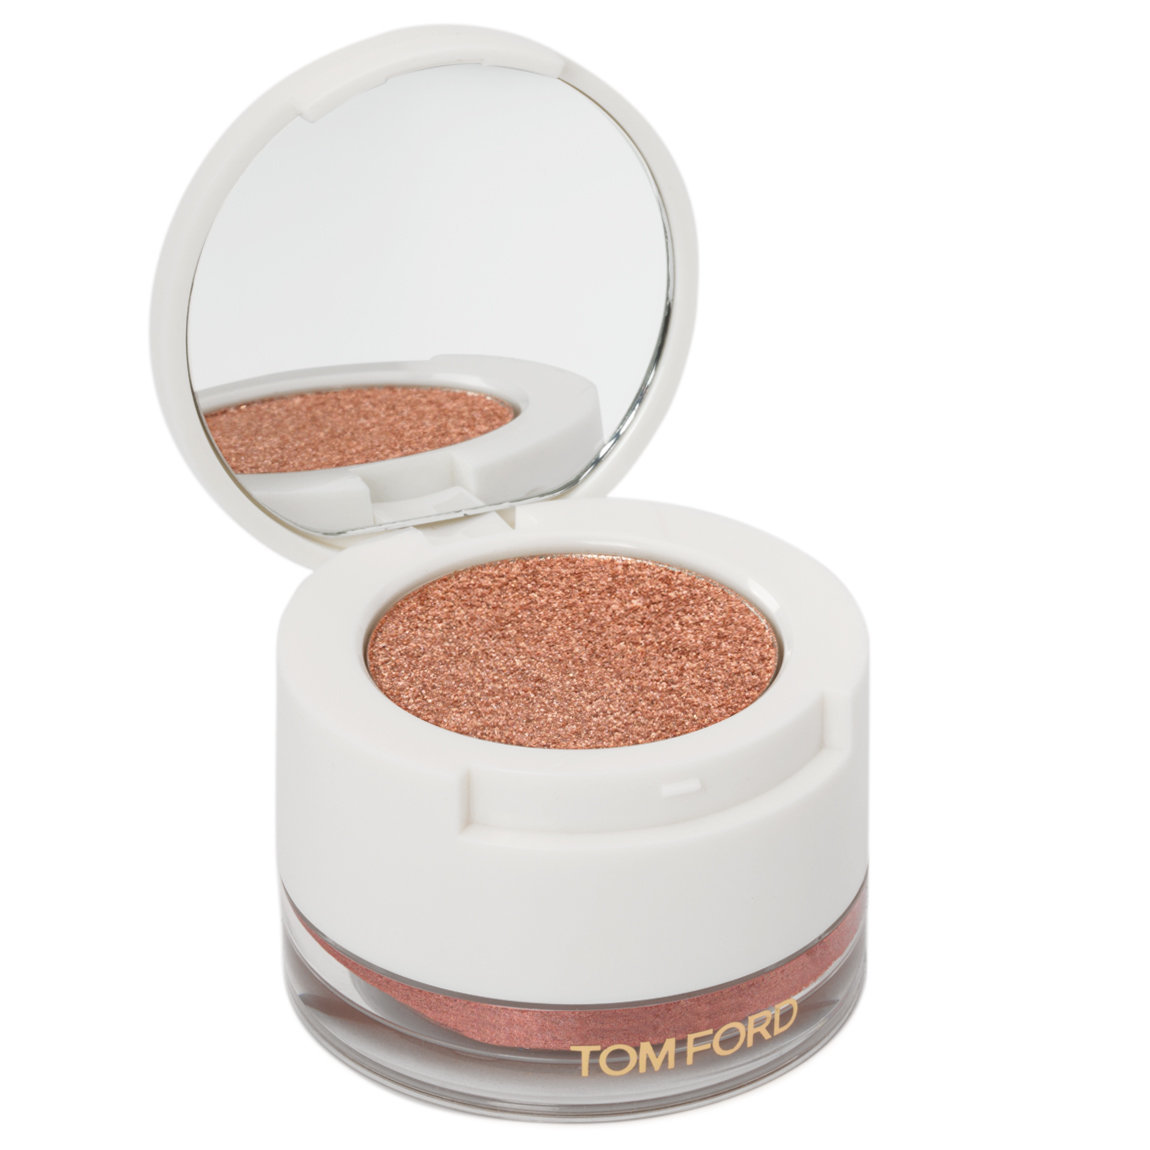 TOM FORD Cream and Powder Eye Color Golden Peach